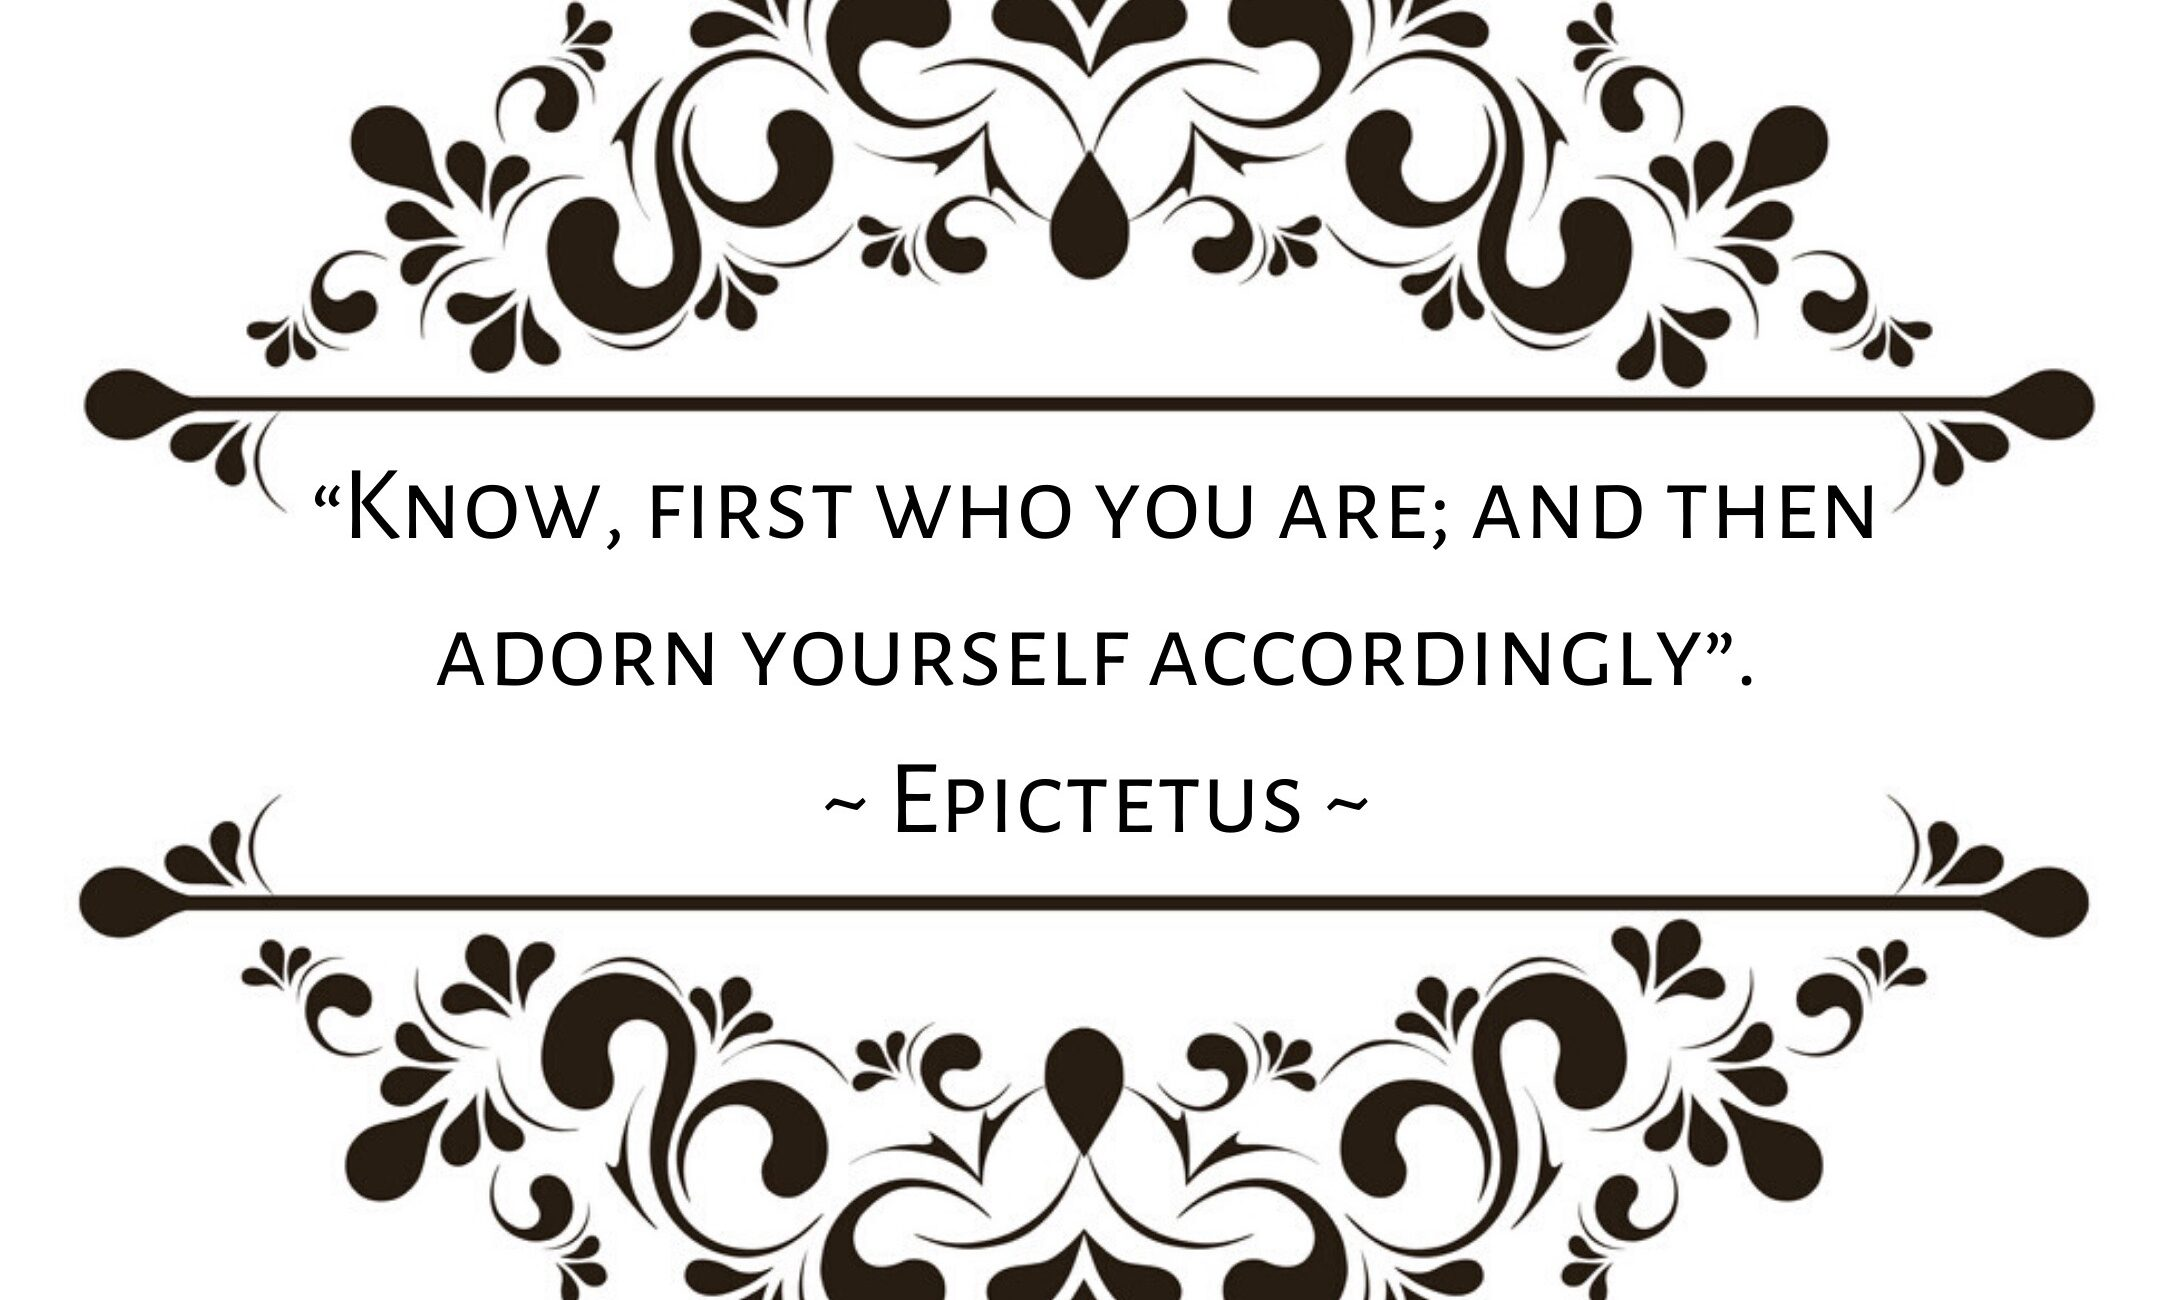 know-first-who-you-are-and-then-adorn-yourself-accordingly-epictetus-style-tip-with-good-looks-bible-glb-by-jehan-mir-small-image